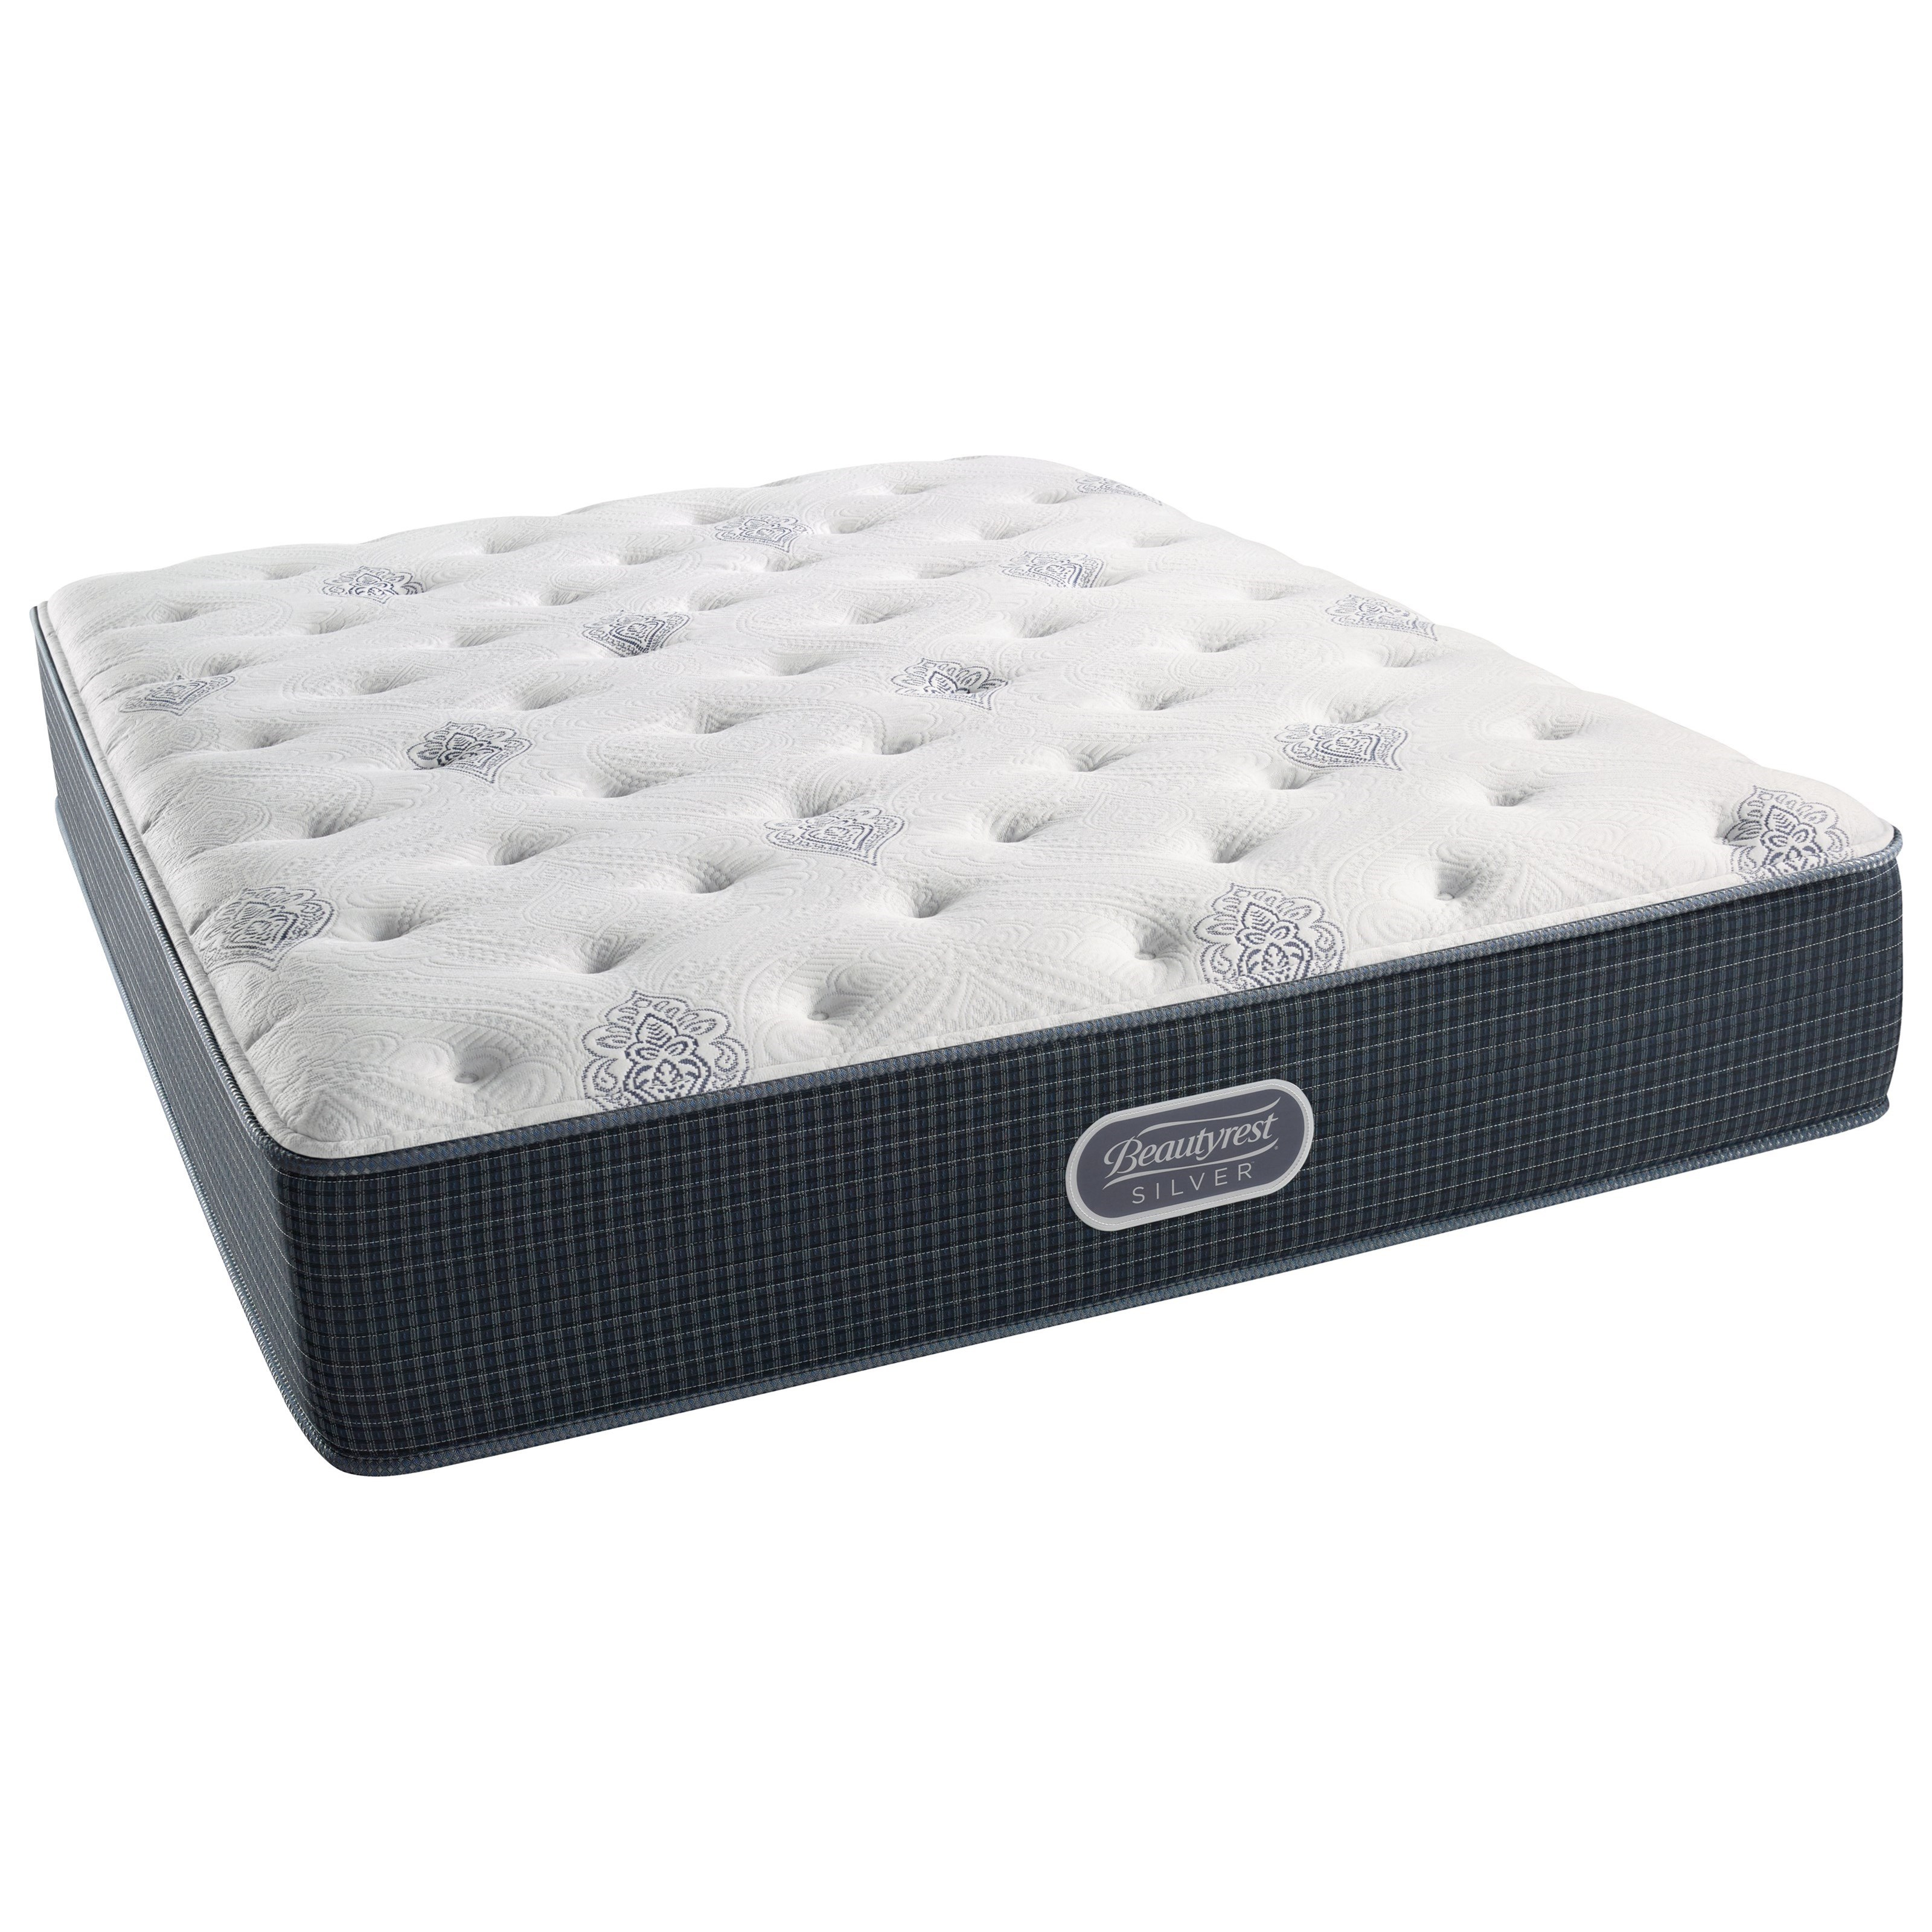 Beautyrest Silver Tidewater Plush King Mattress - Item Number: 700600240-1060